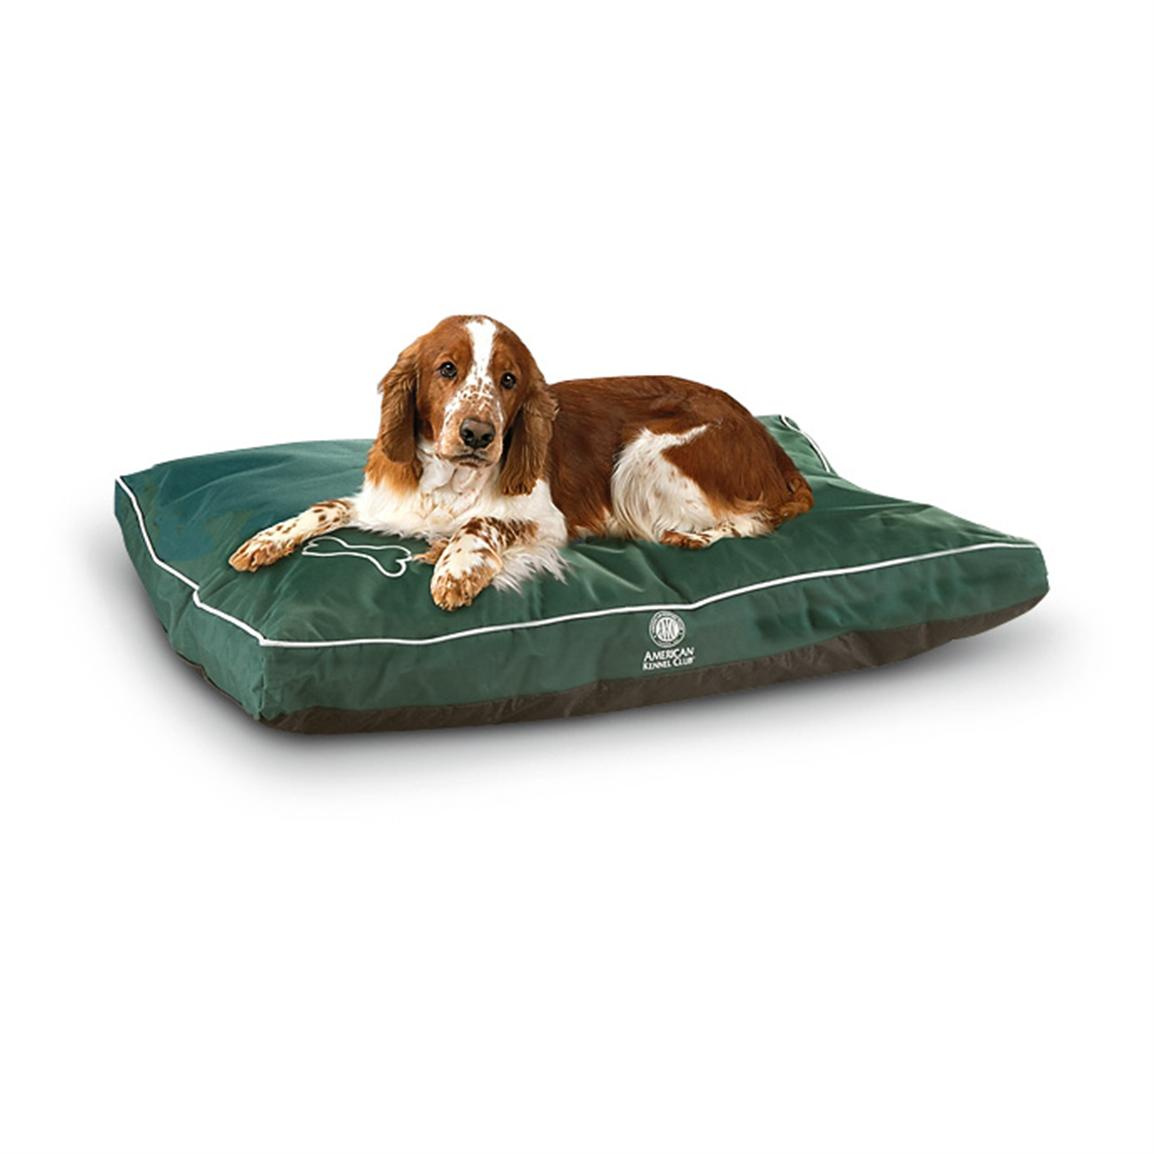 AKC® Water-resistant Dog Bed